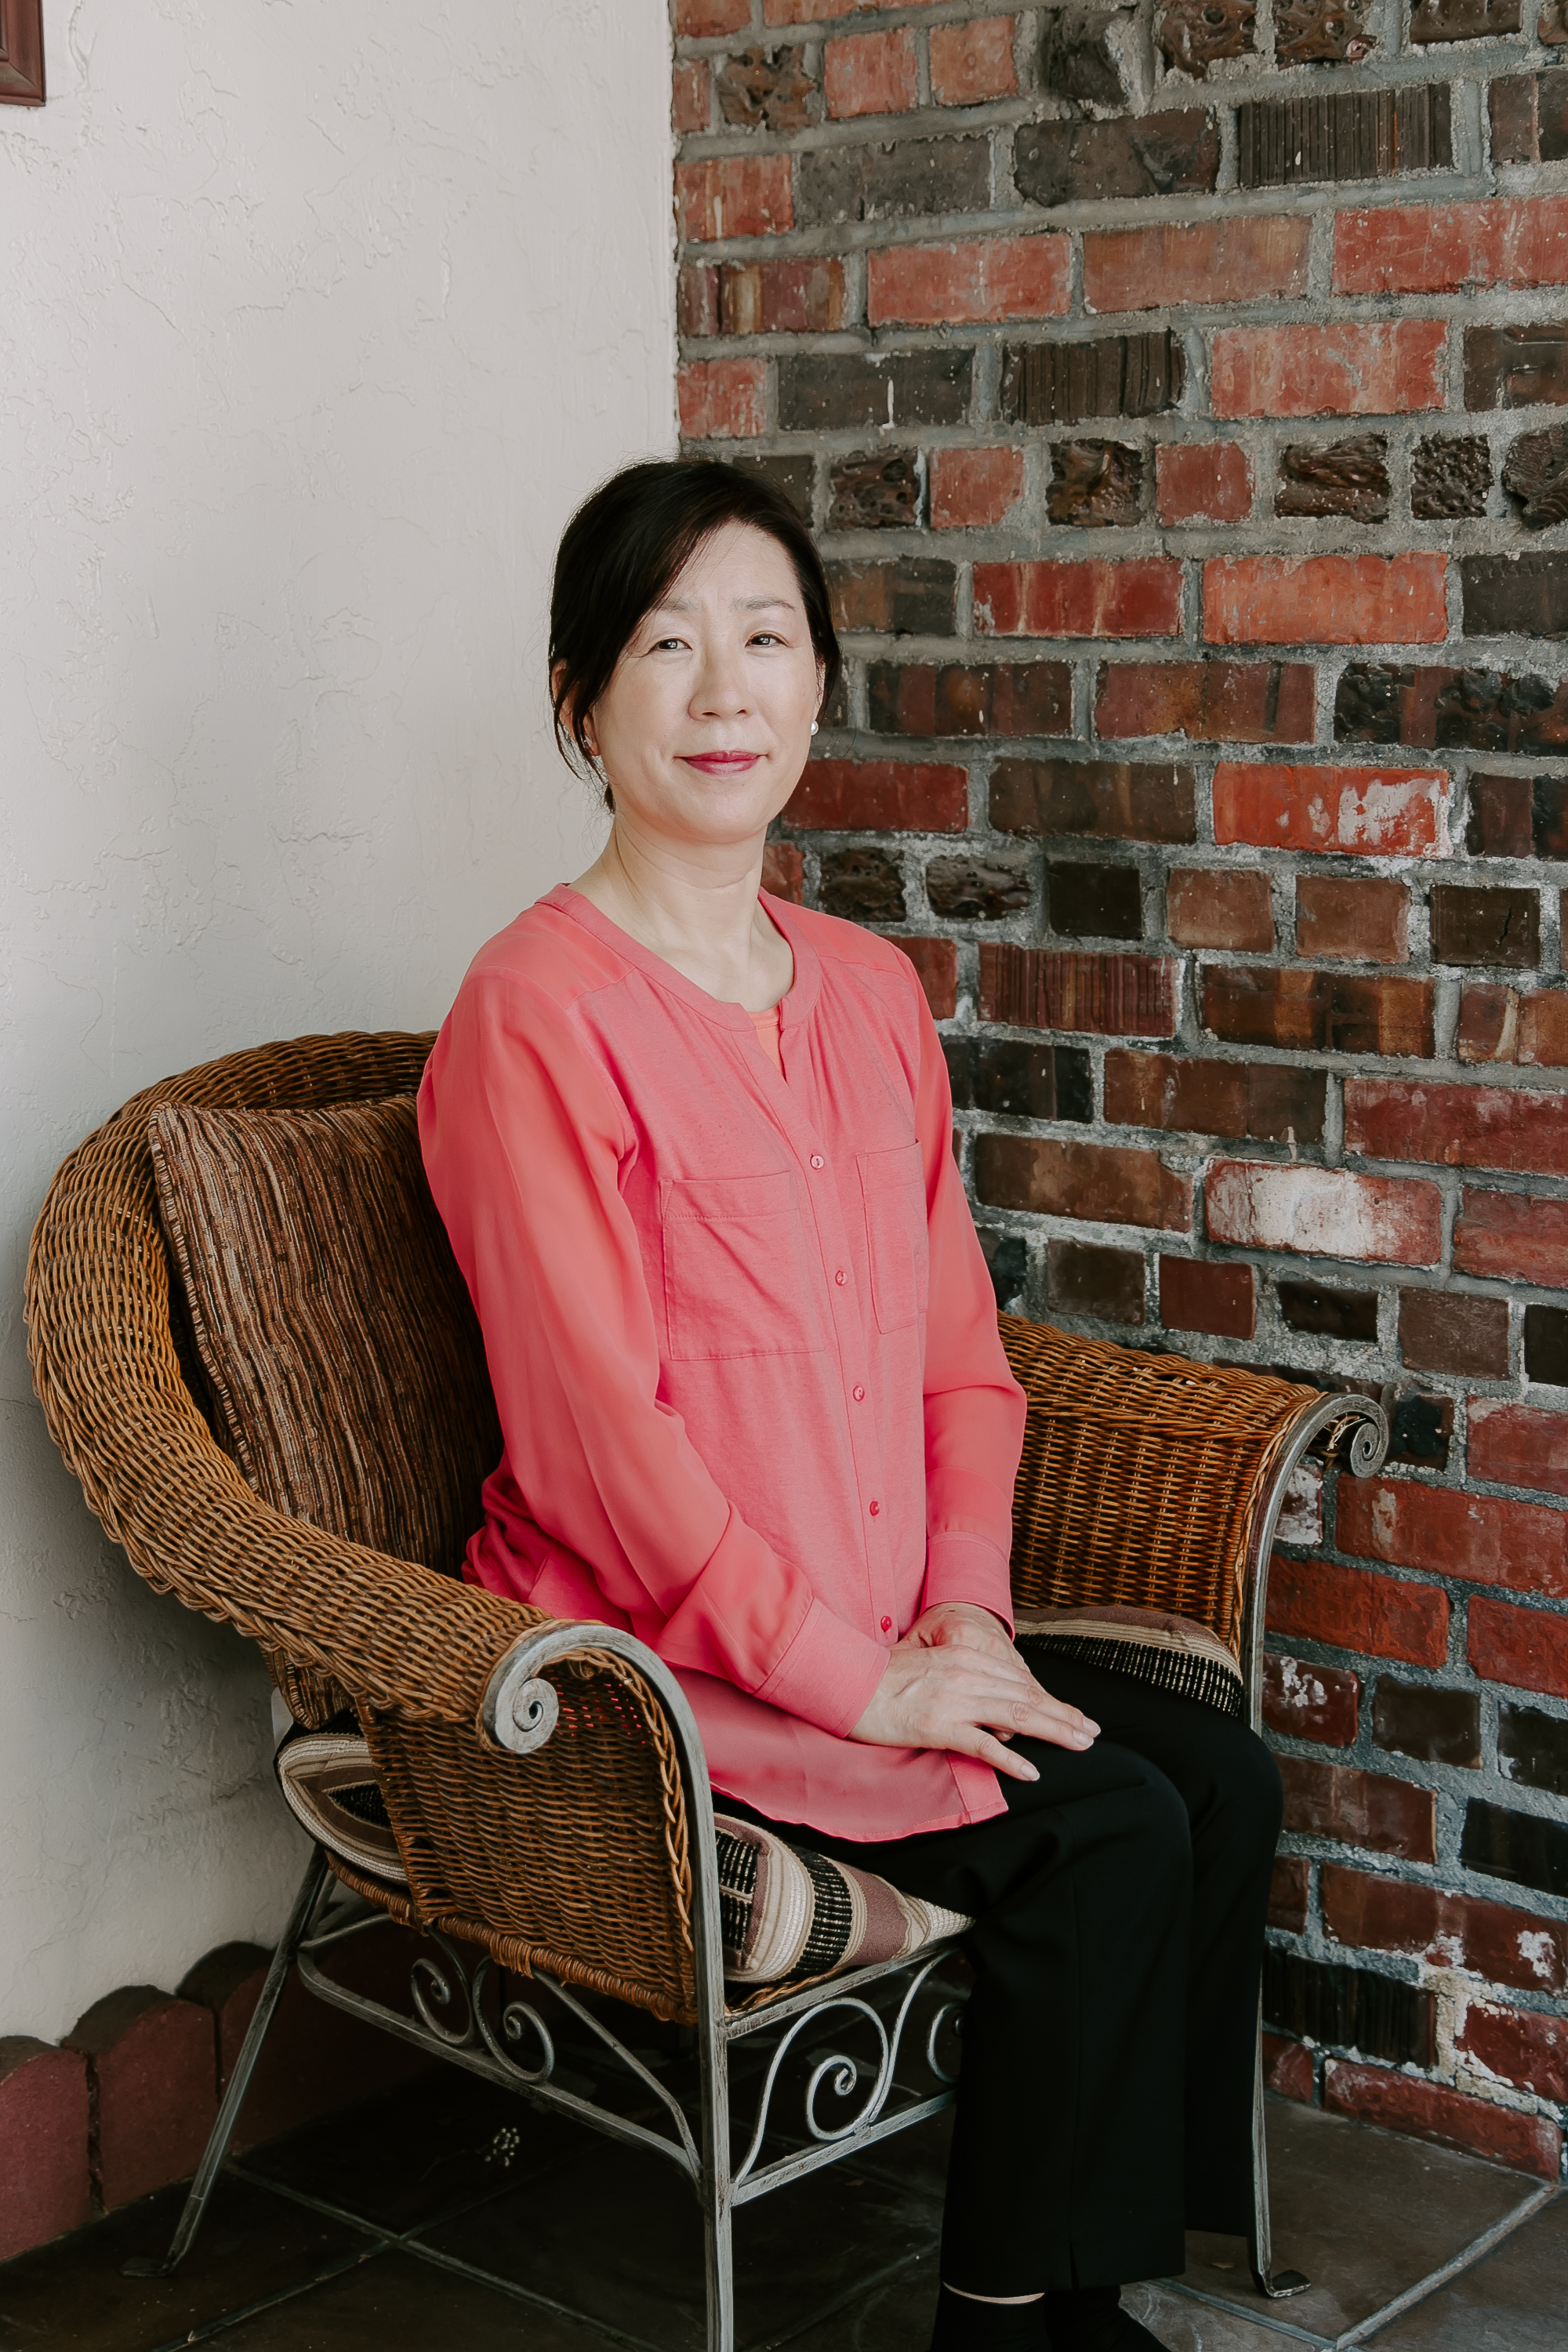 Meet the Owner - Born in South Korea the home of K-Beauty, Joyce has grown a natural eye and affinity for esthetics growing up. She has brought in multiple products for Piel Fina Spa that has proven to be effective time and time again for each individual. She not only has a passion for our clients skin needs, but she also aspires to provide a comfortable environment, where you can feel at home. Her warm and welcoming enthusiasm partnered with her professional passion for esthetics will make you feel cared for.